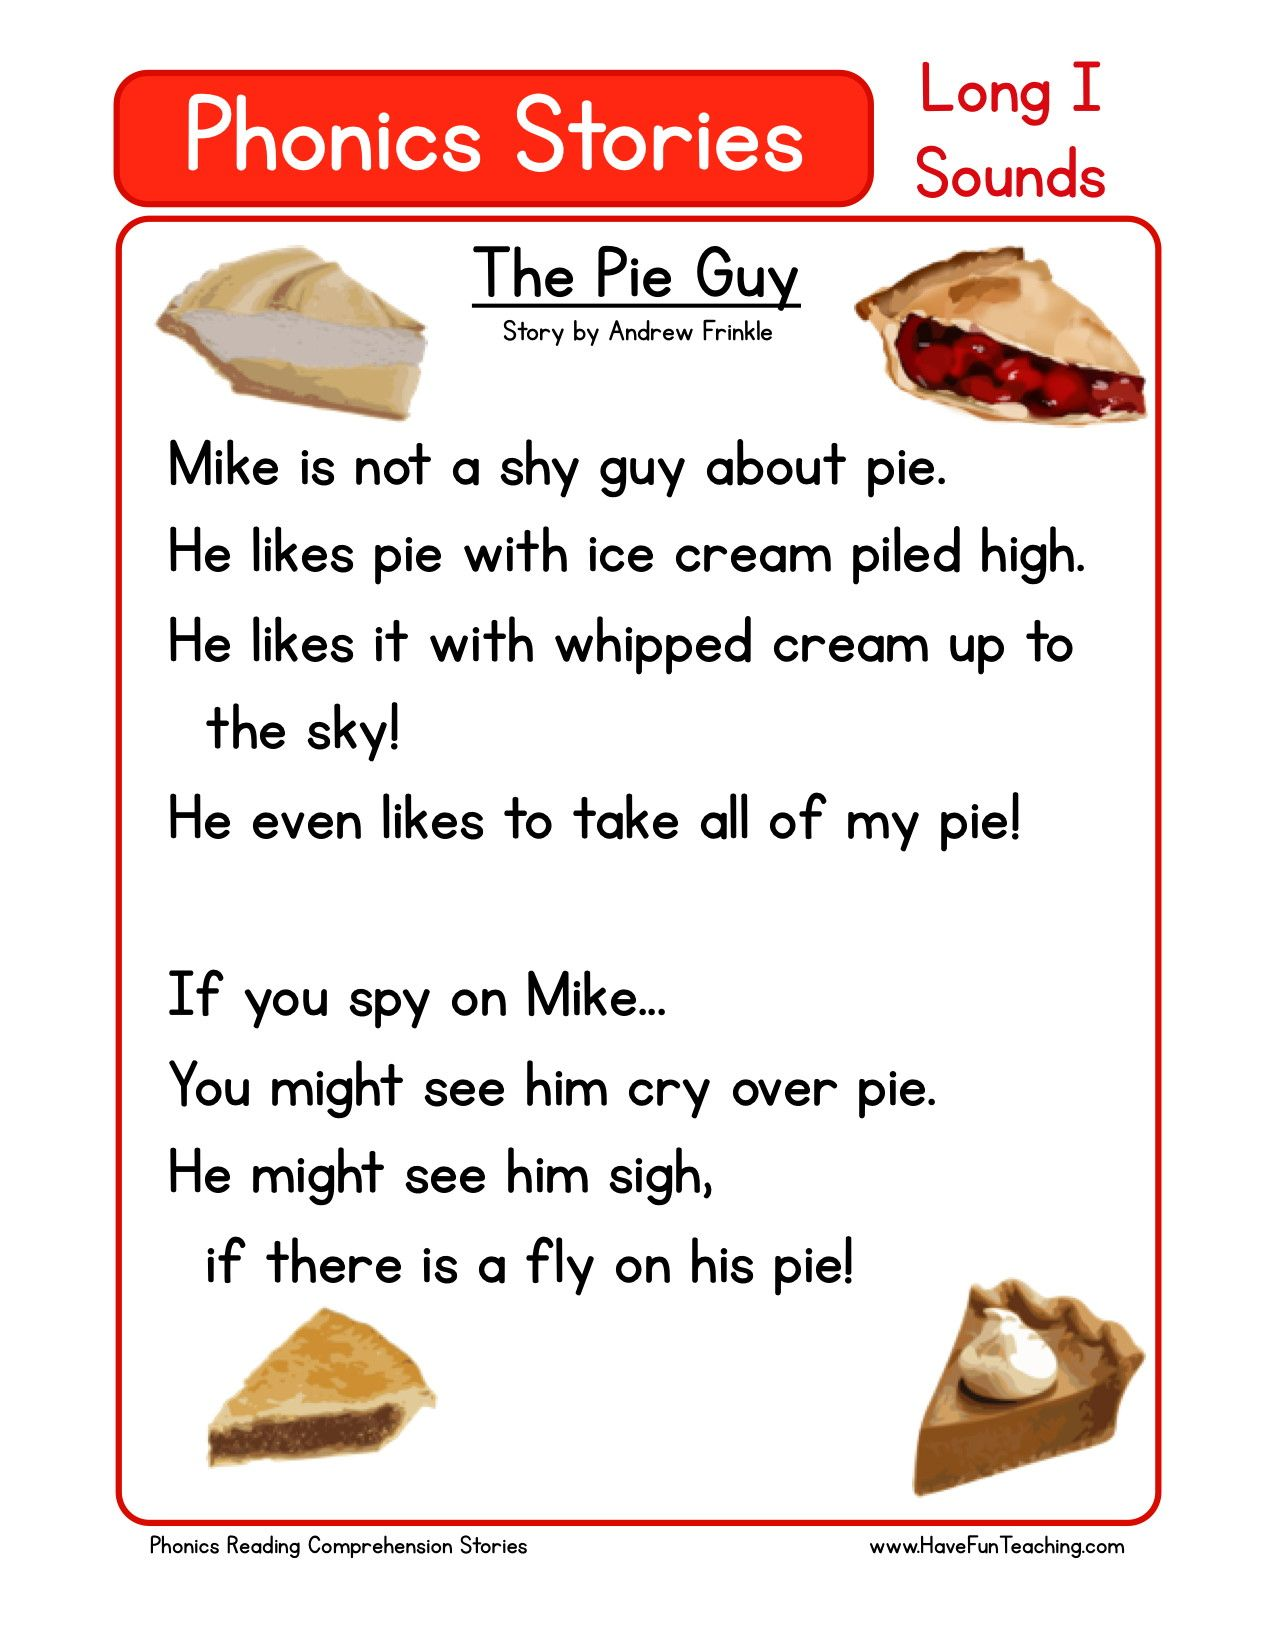 Worksheet Reading Comprehension Stories this reading comprehension worksheet the pie guy is for teaching use this